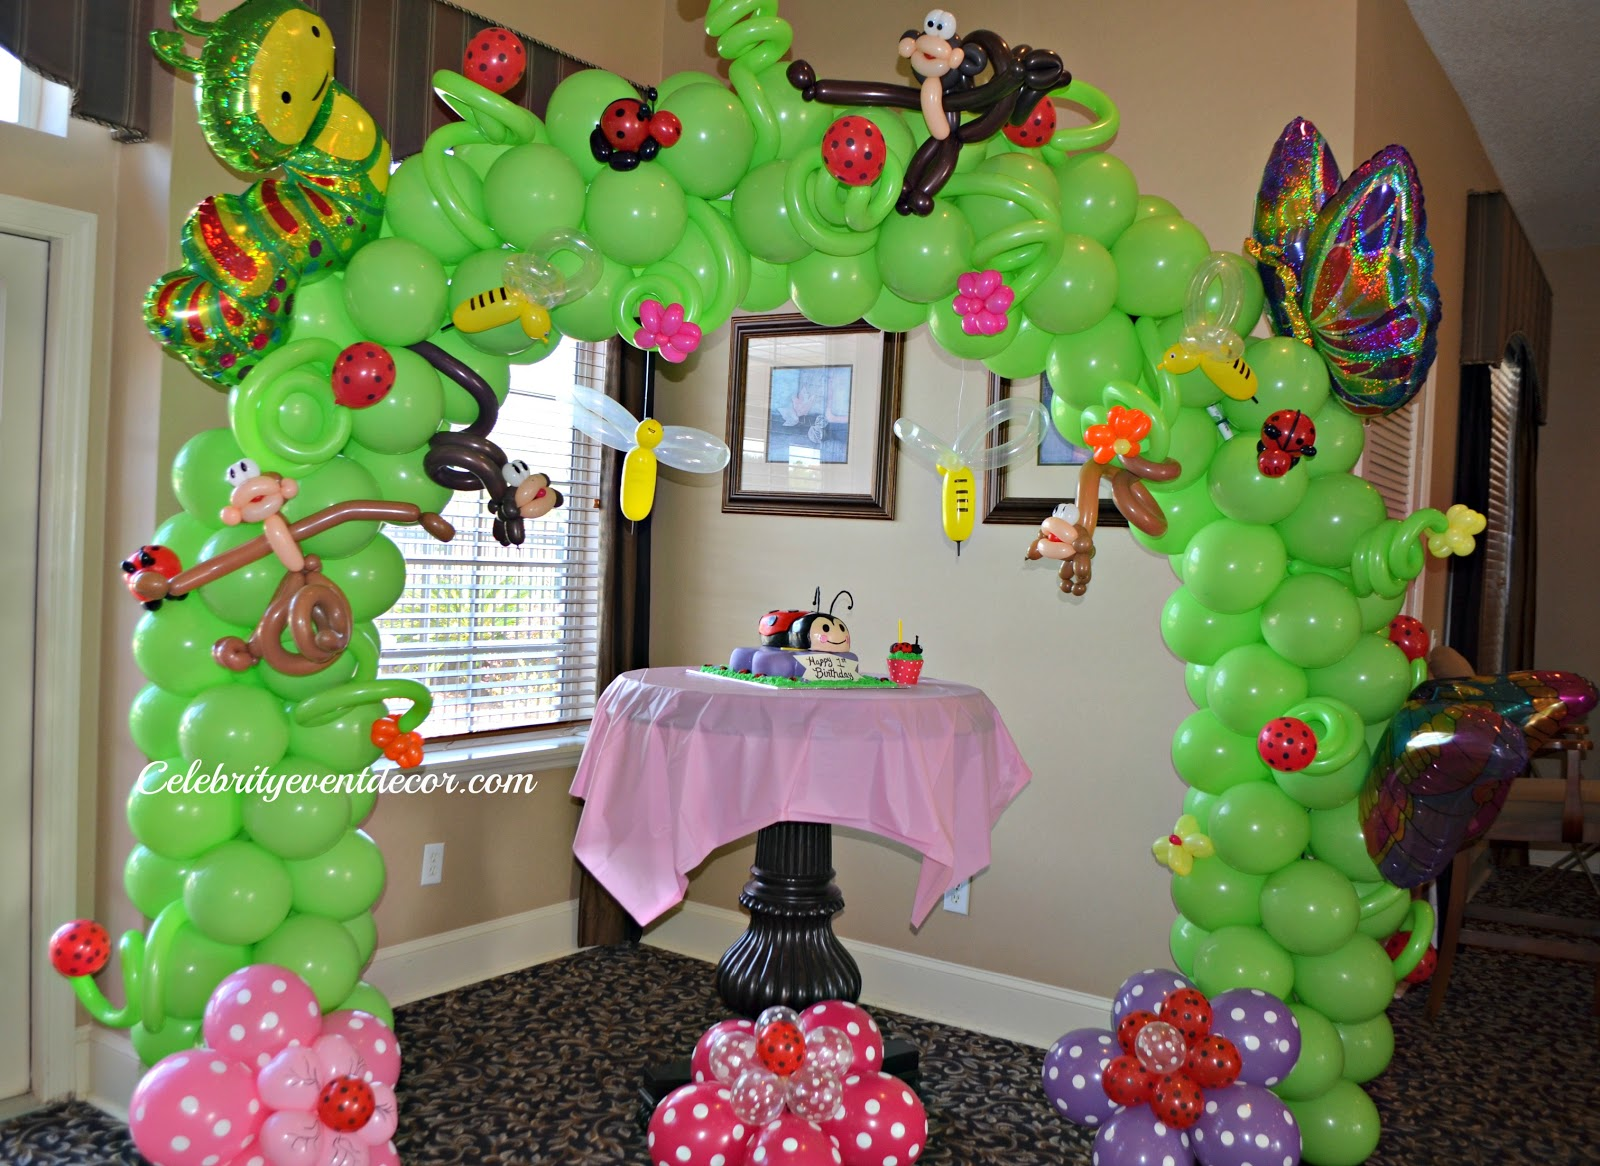 Ladybug balloon decorations 1st birthday images frompo for Balloon decoration ideas for 1st birthday party